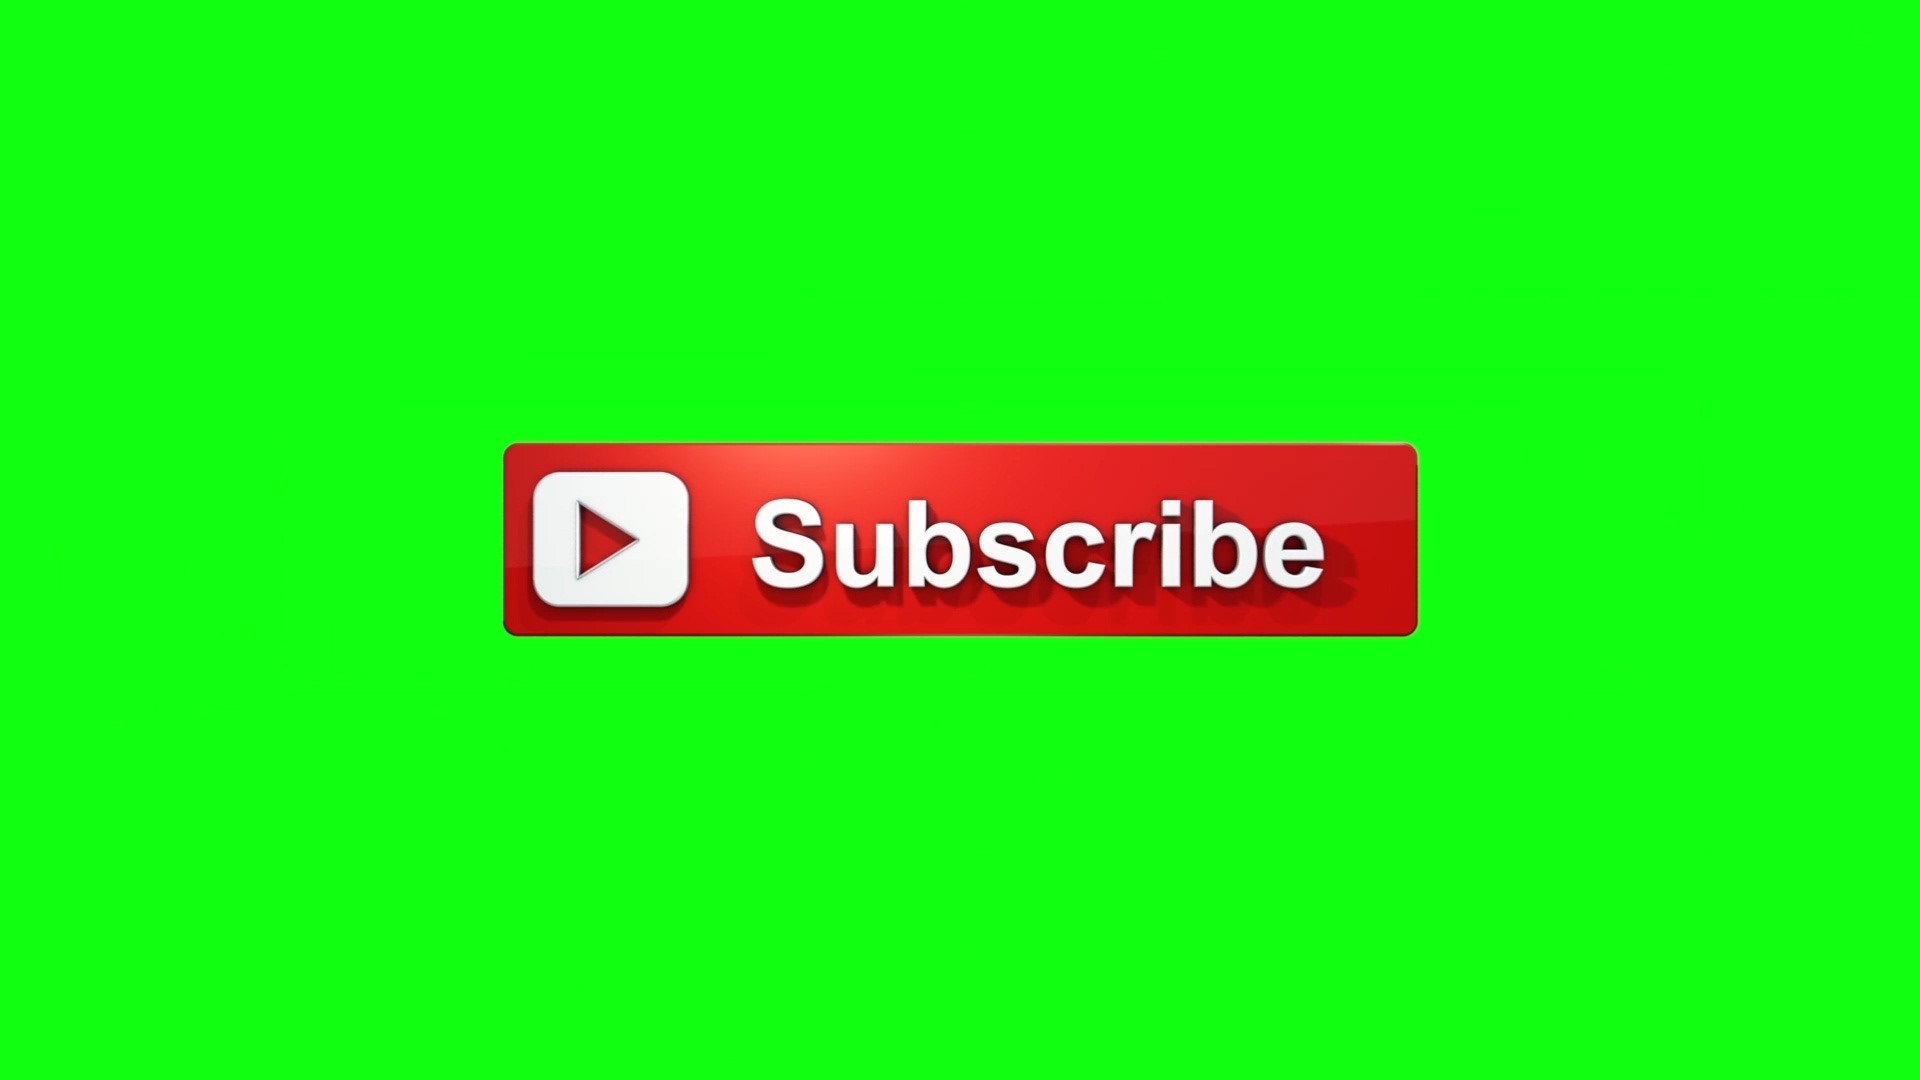 1920x1080 Green Screen Logo YouTube Subscribe Intro Explosion - Footage PixelBoom -  YouTube